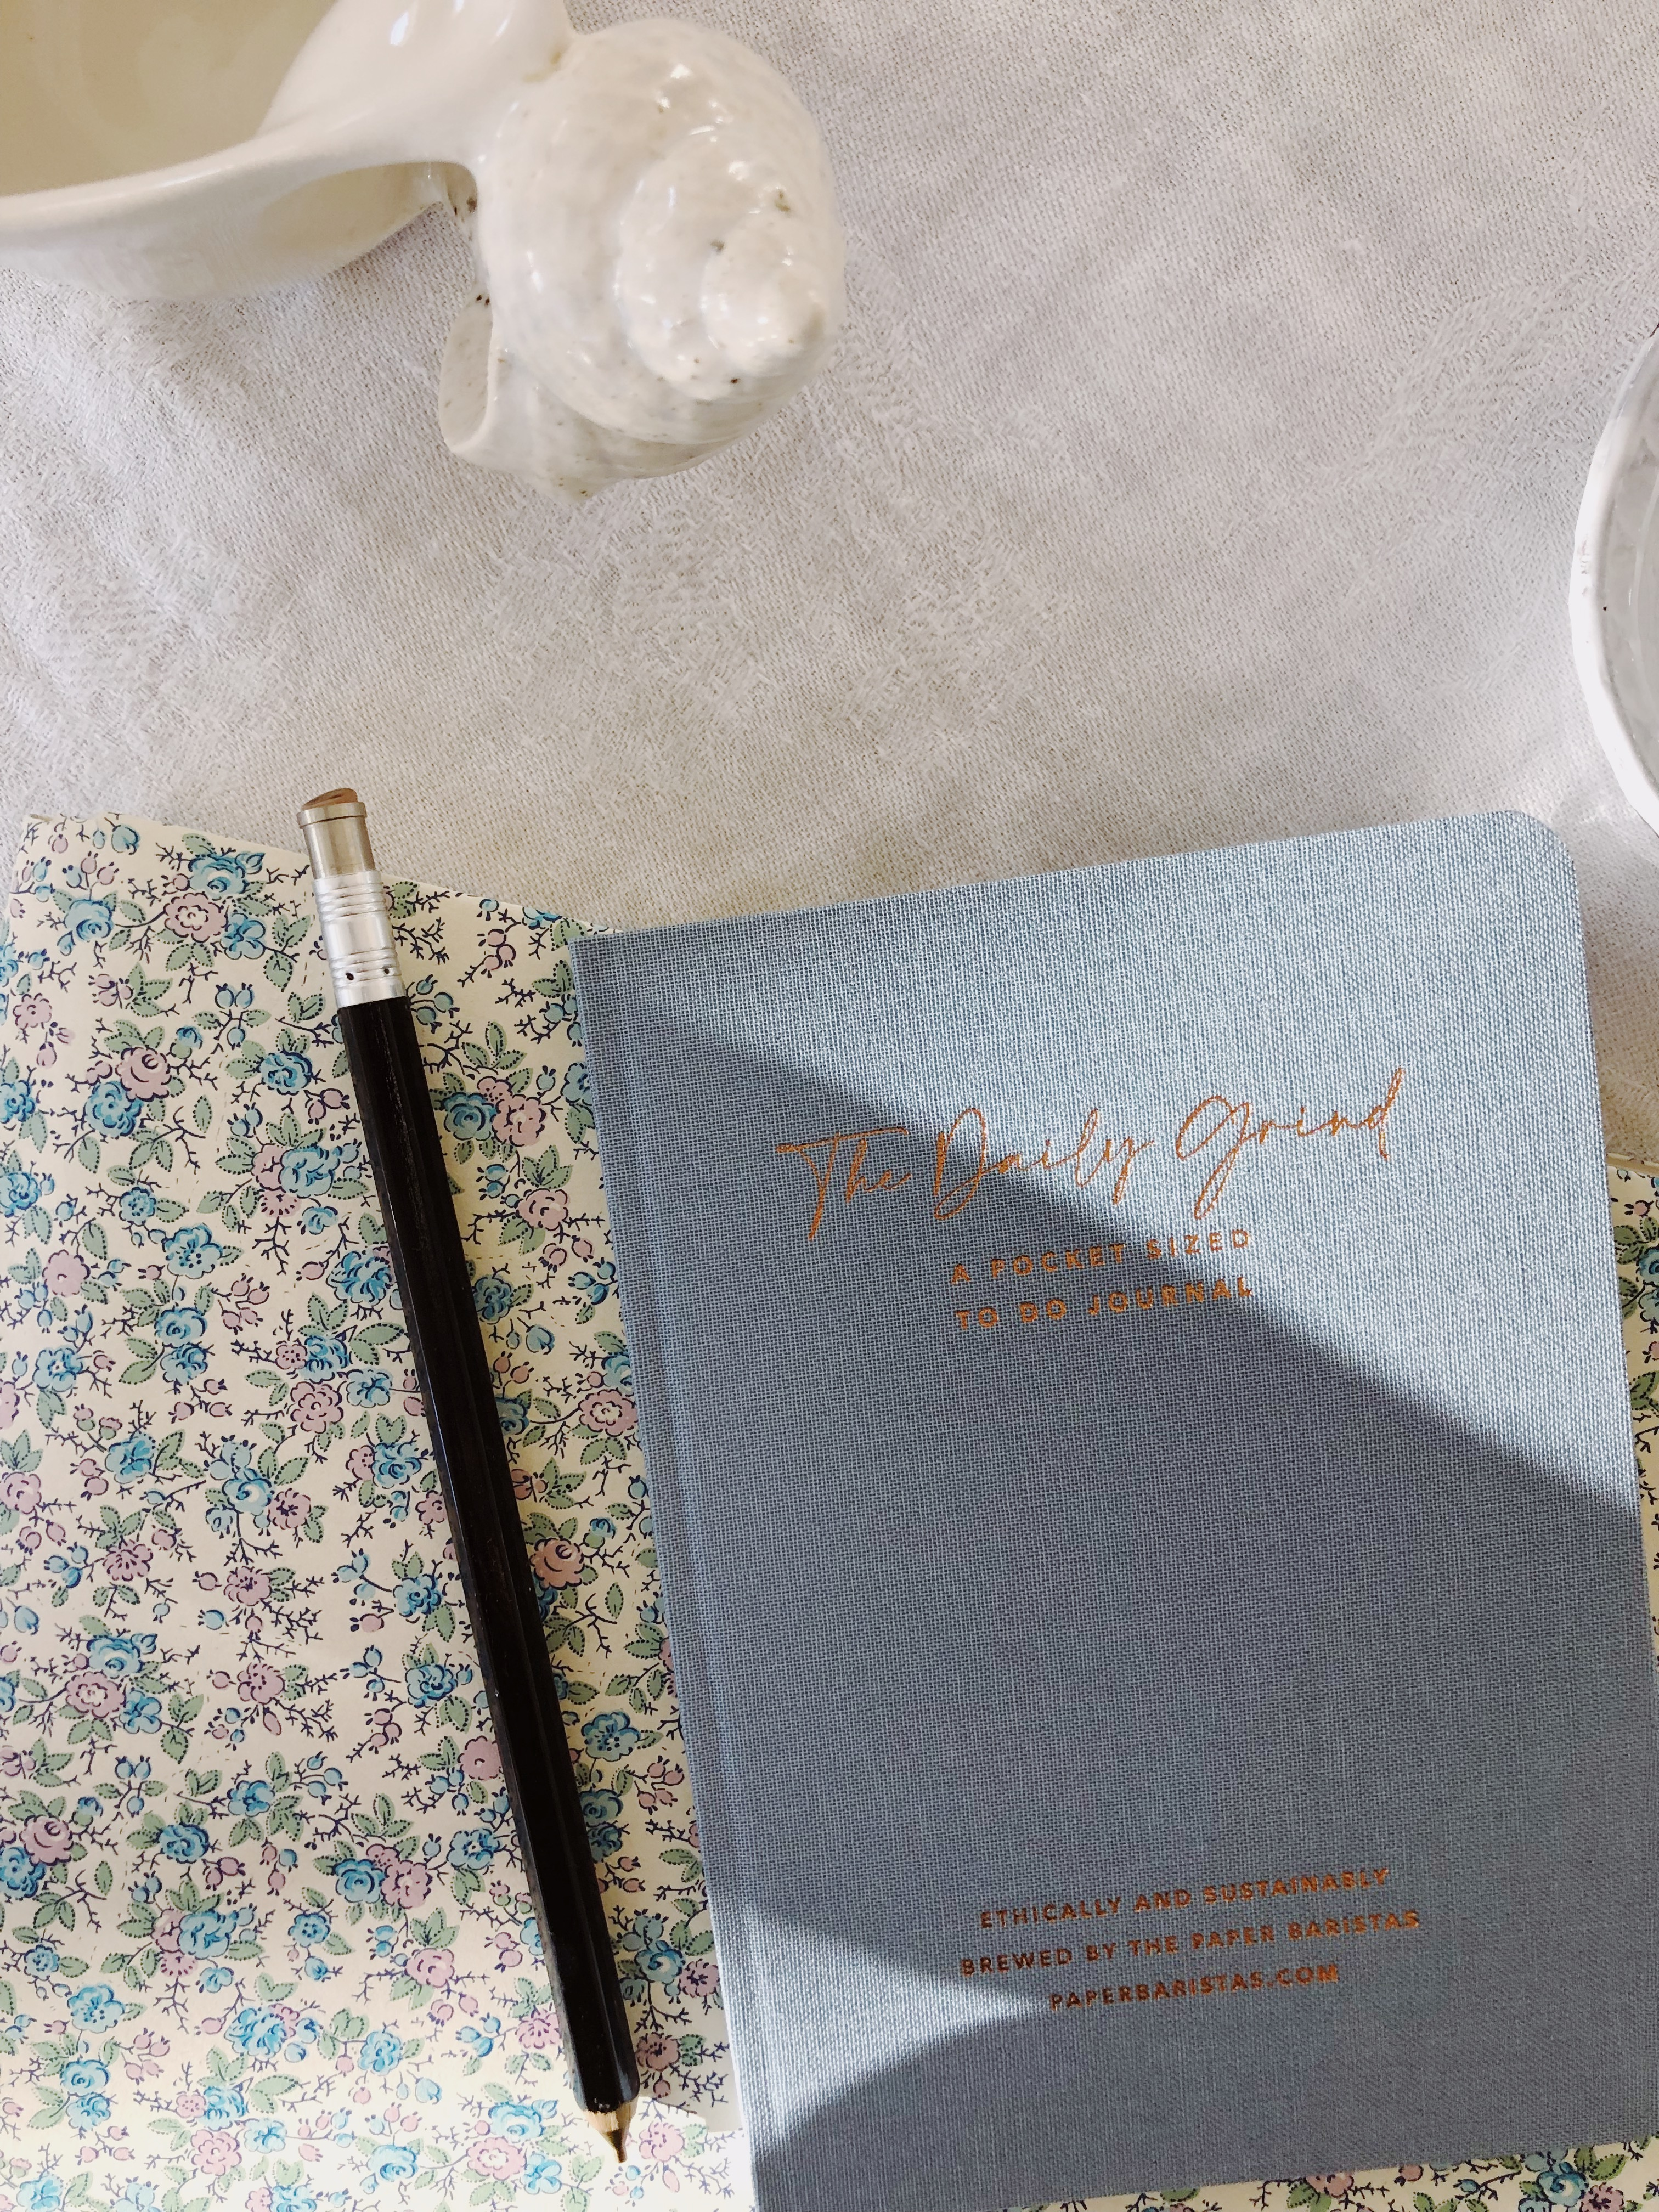 To Do Journal